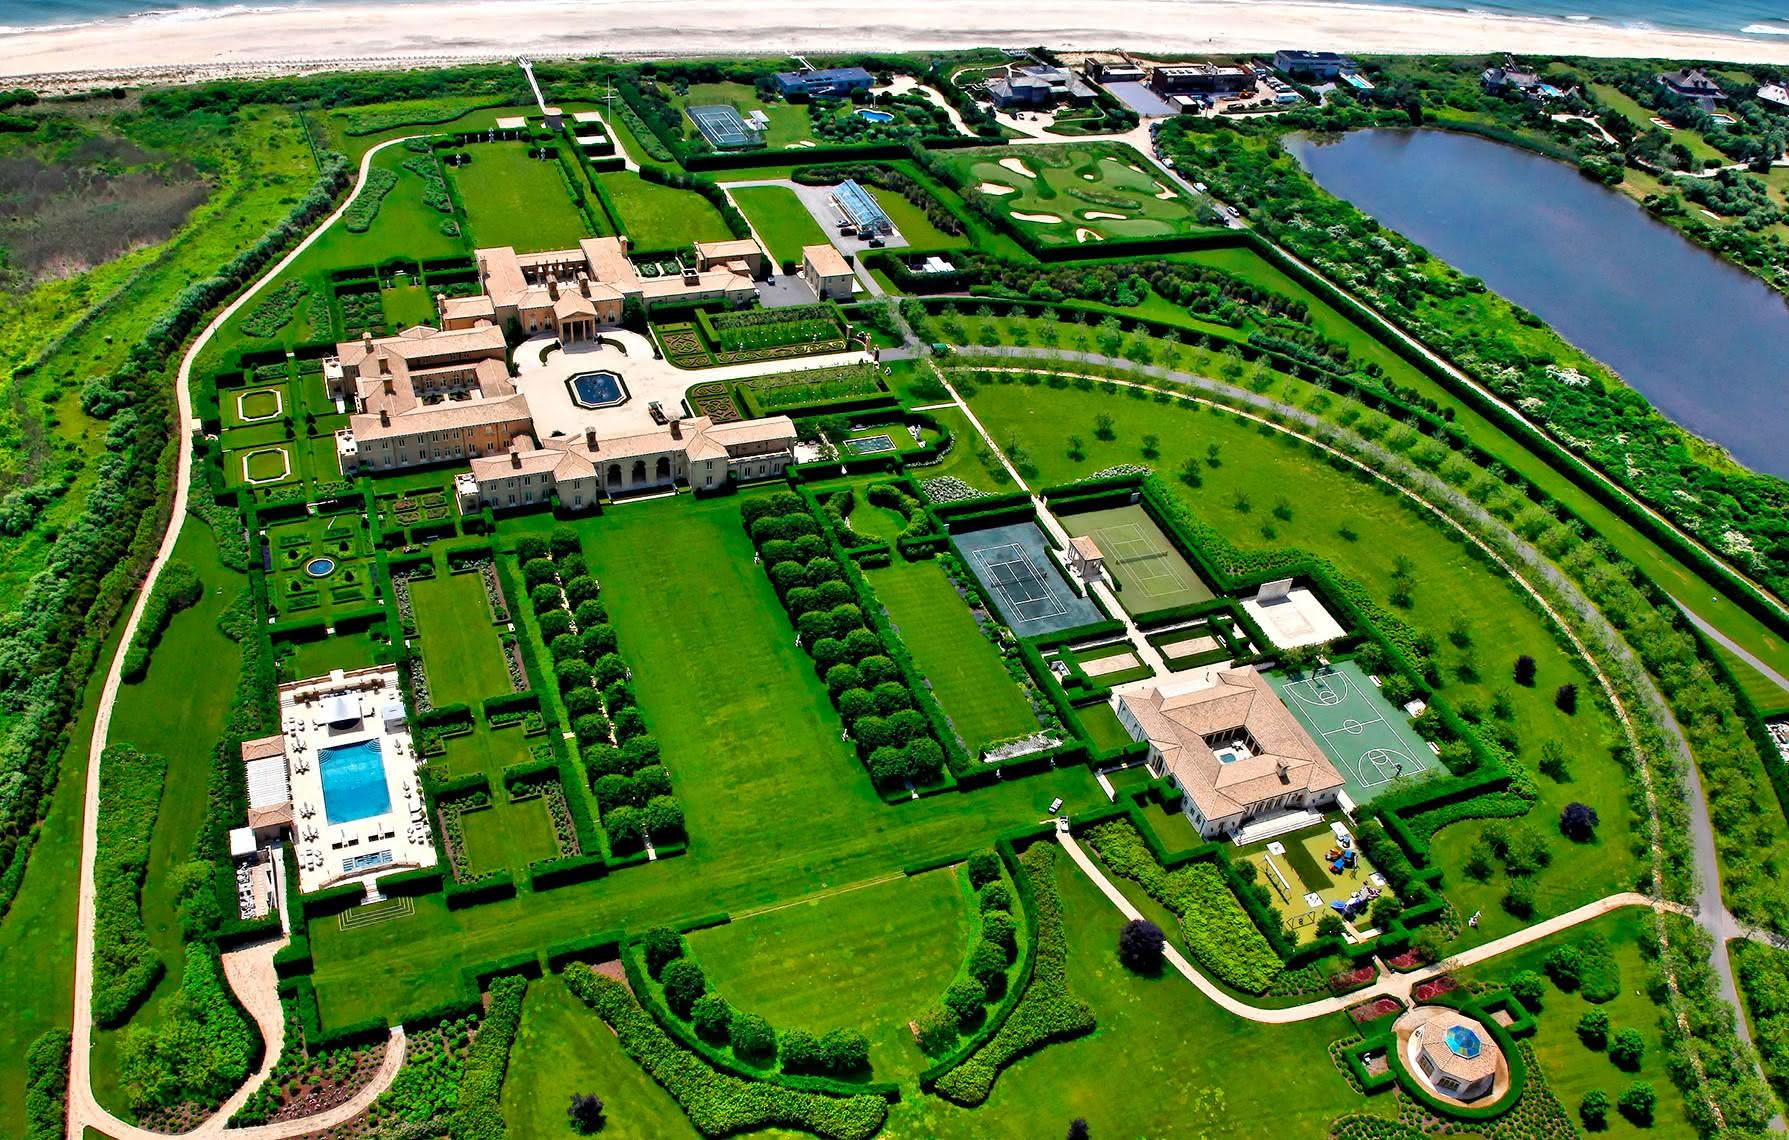 The Chinese billionaire built 258 luxurious villas as a gift to his fellow villagers, but because of greed no one lives there 1